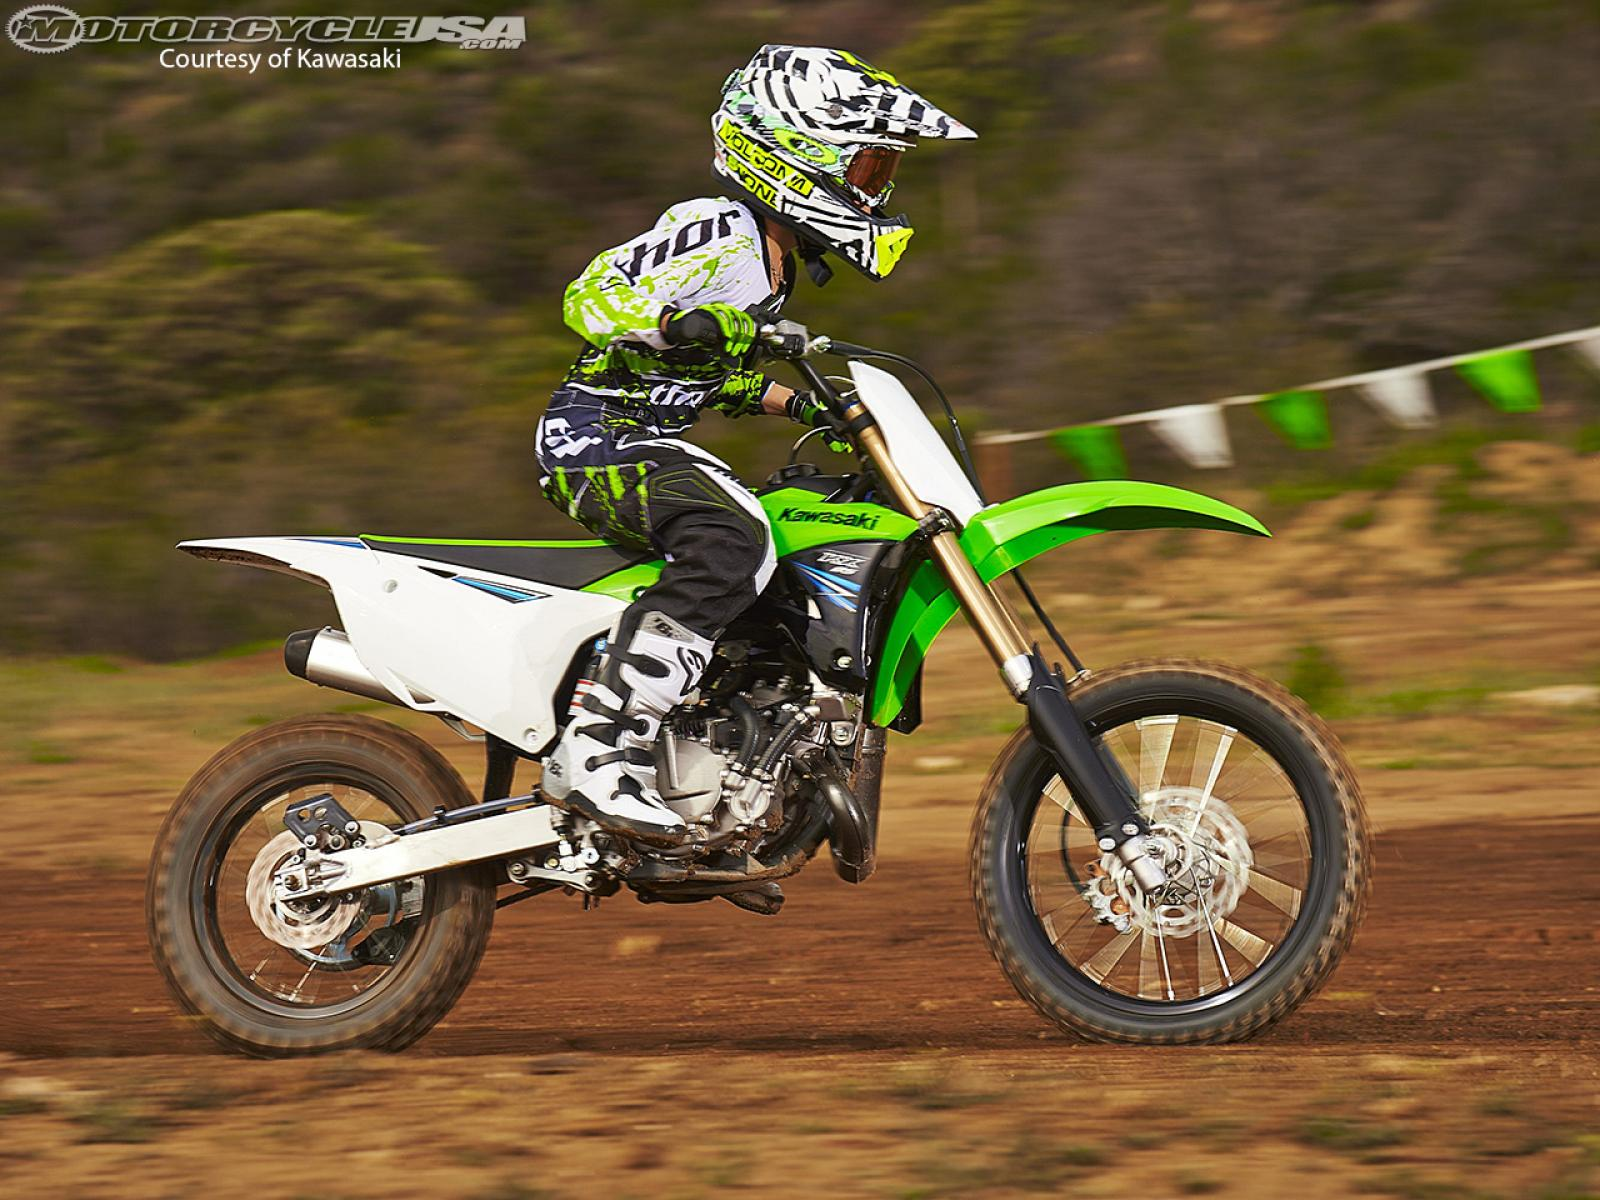 hight resolution of  kawasaki kx85 11 800 1024 1280 1600 origin